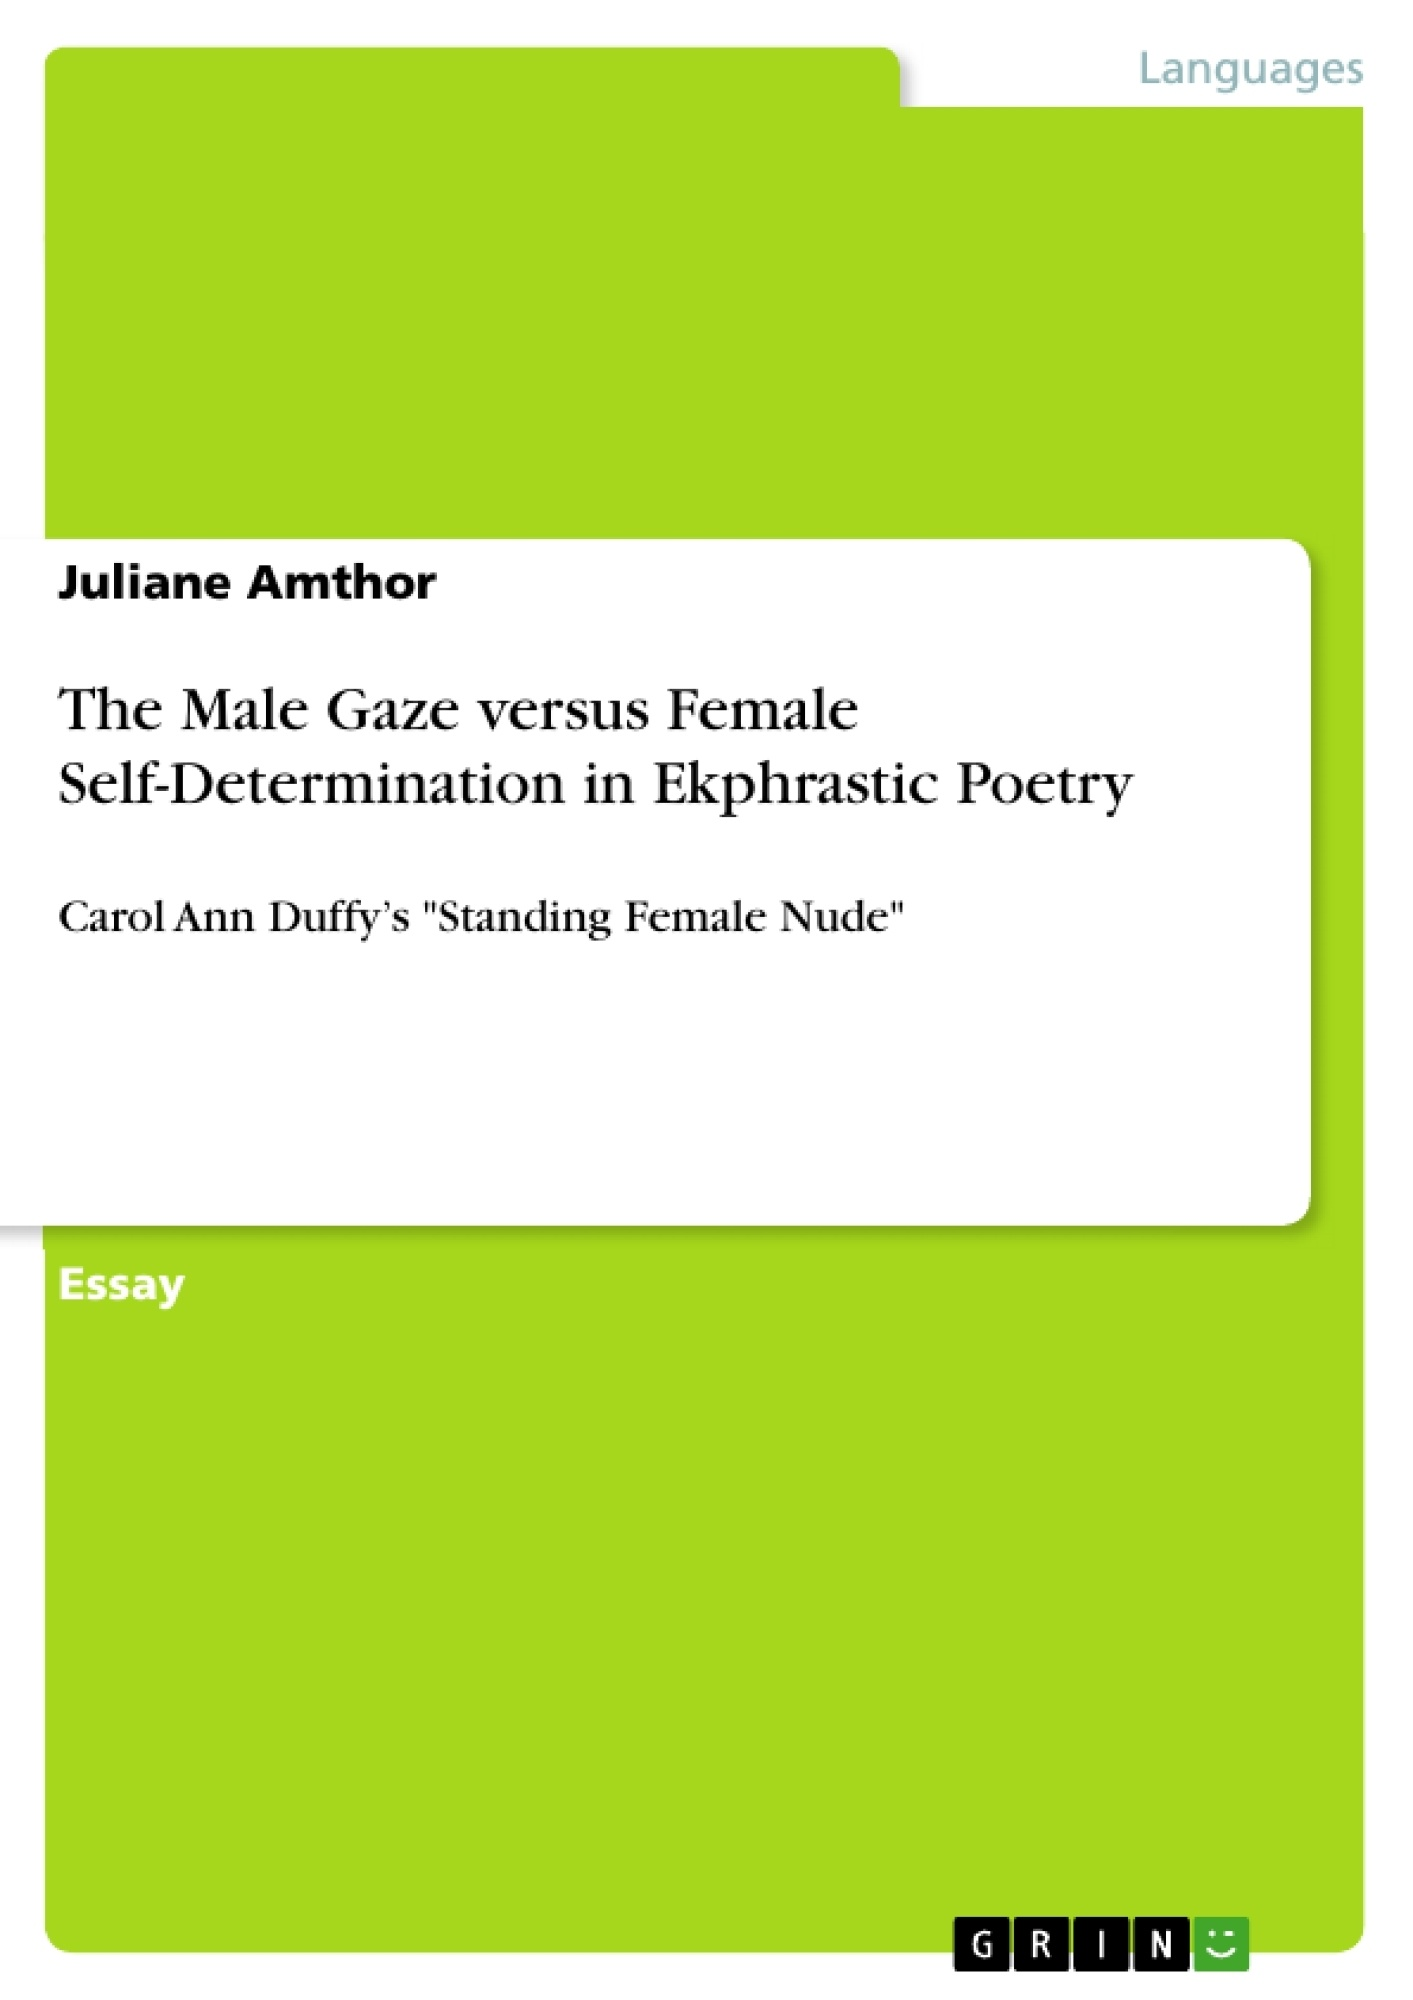 Title: The Male Gaze versus Female Self-Determination in Ekphrastic Poetry